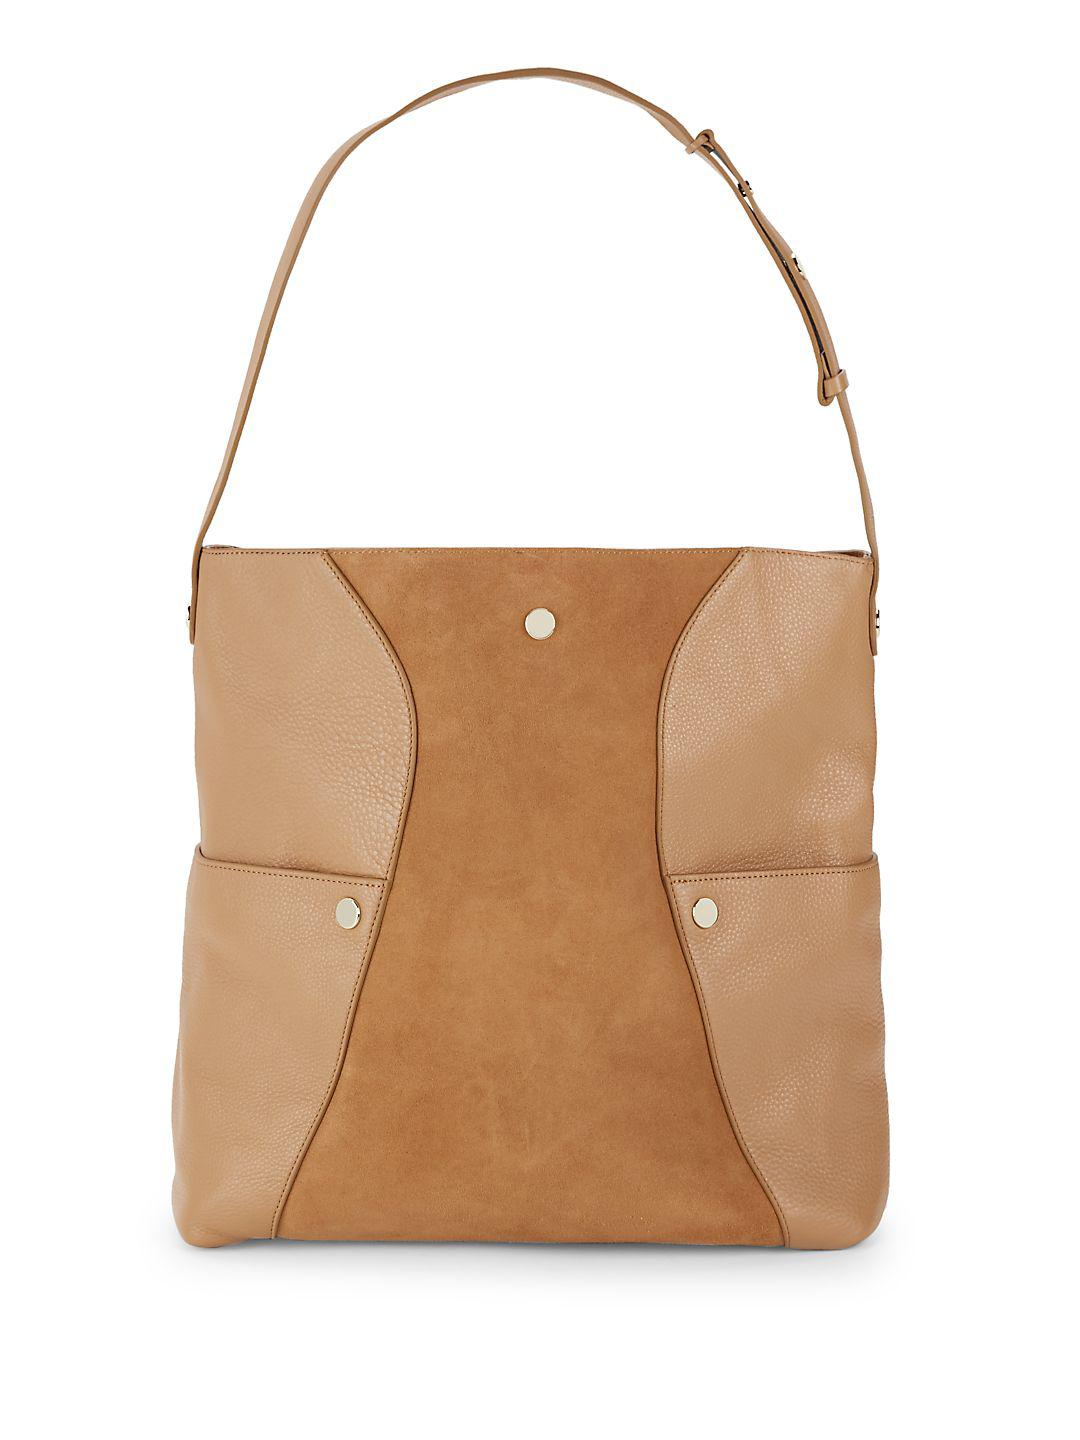 315ba5a86d Gallery. Previously sold at  Gilt · Women s Leather Bags ...